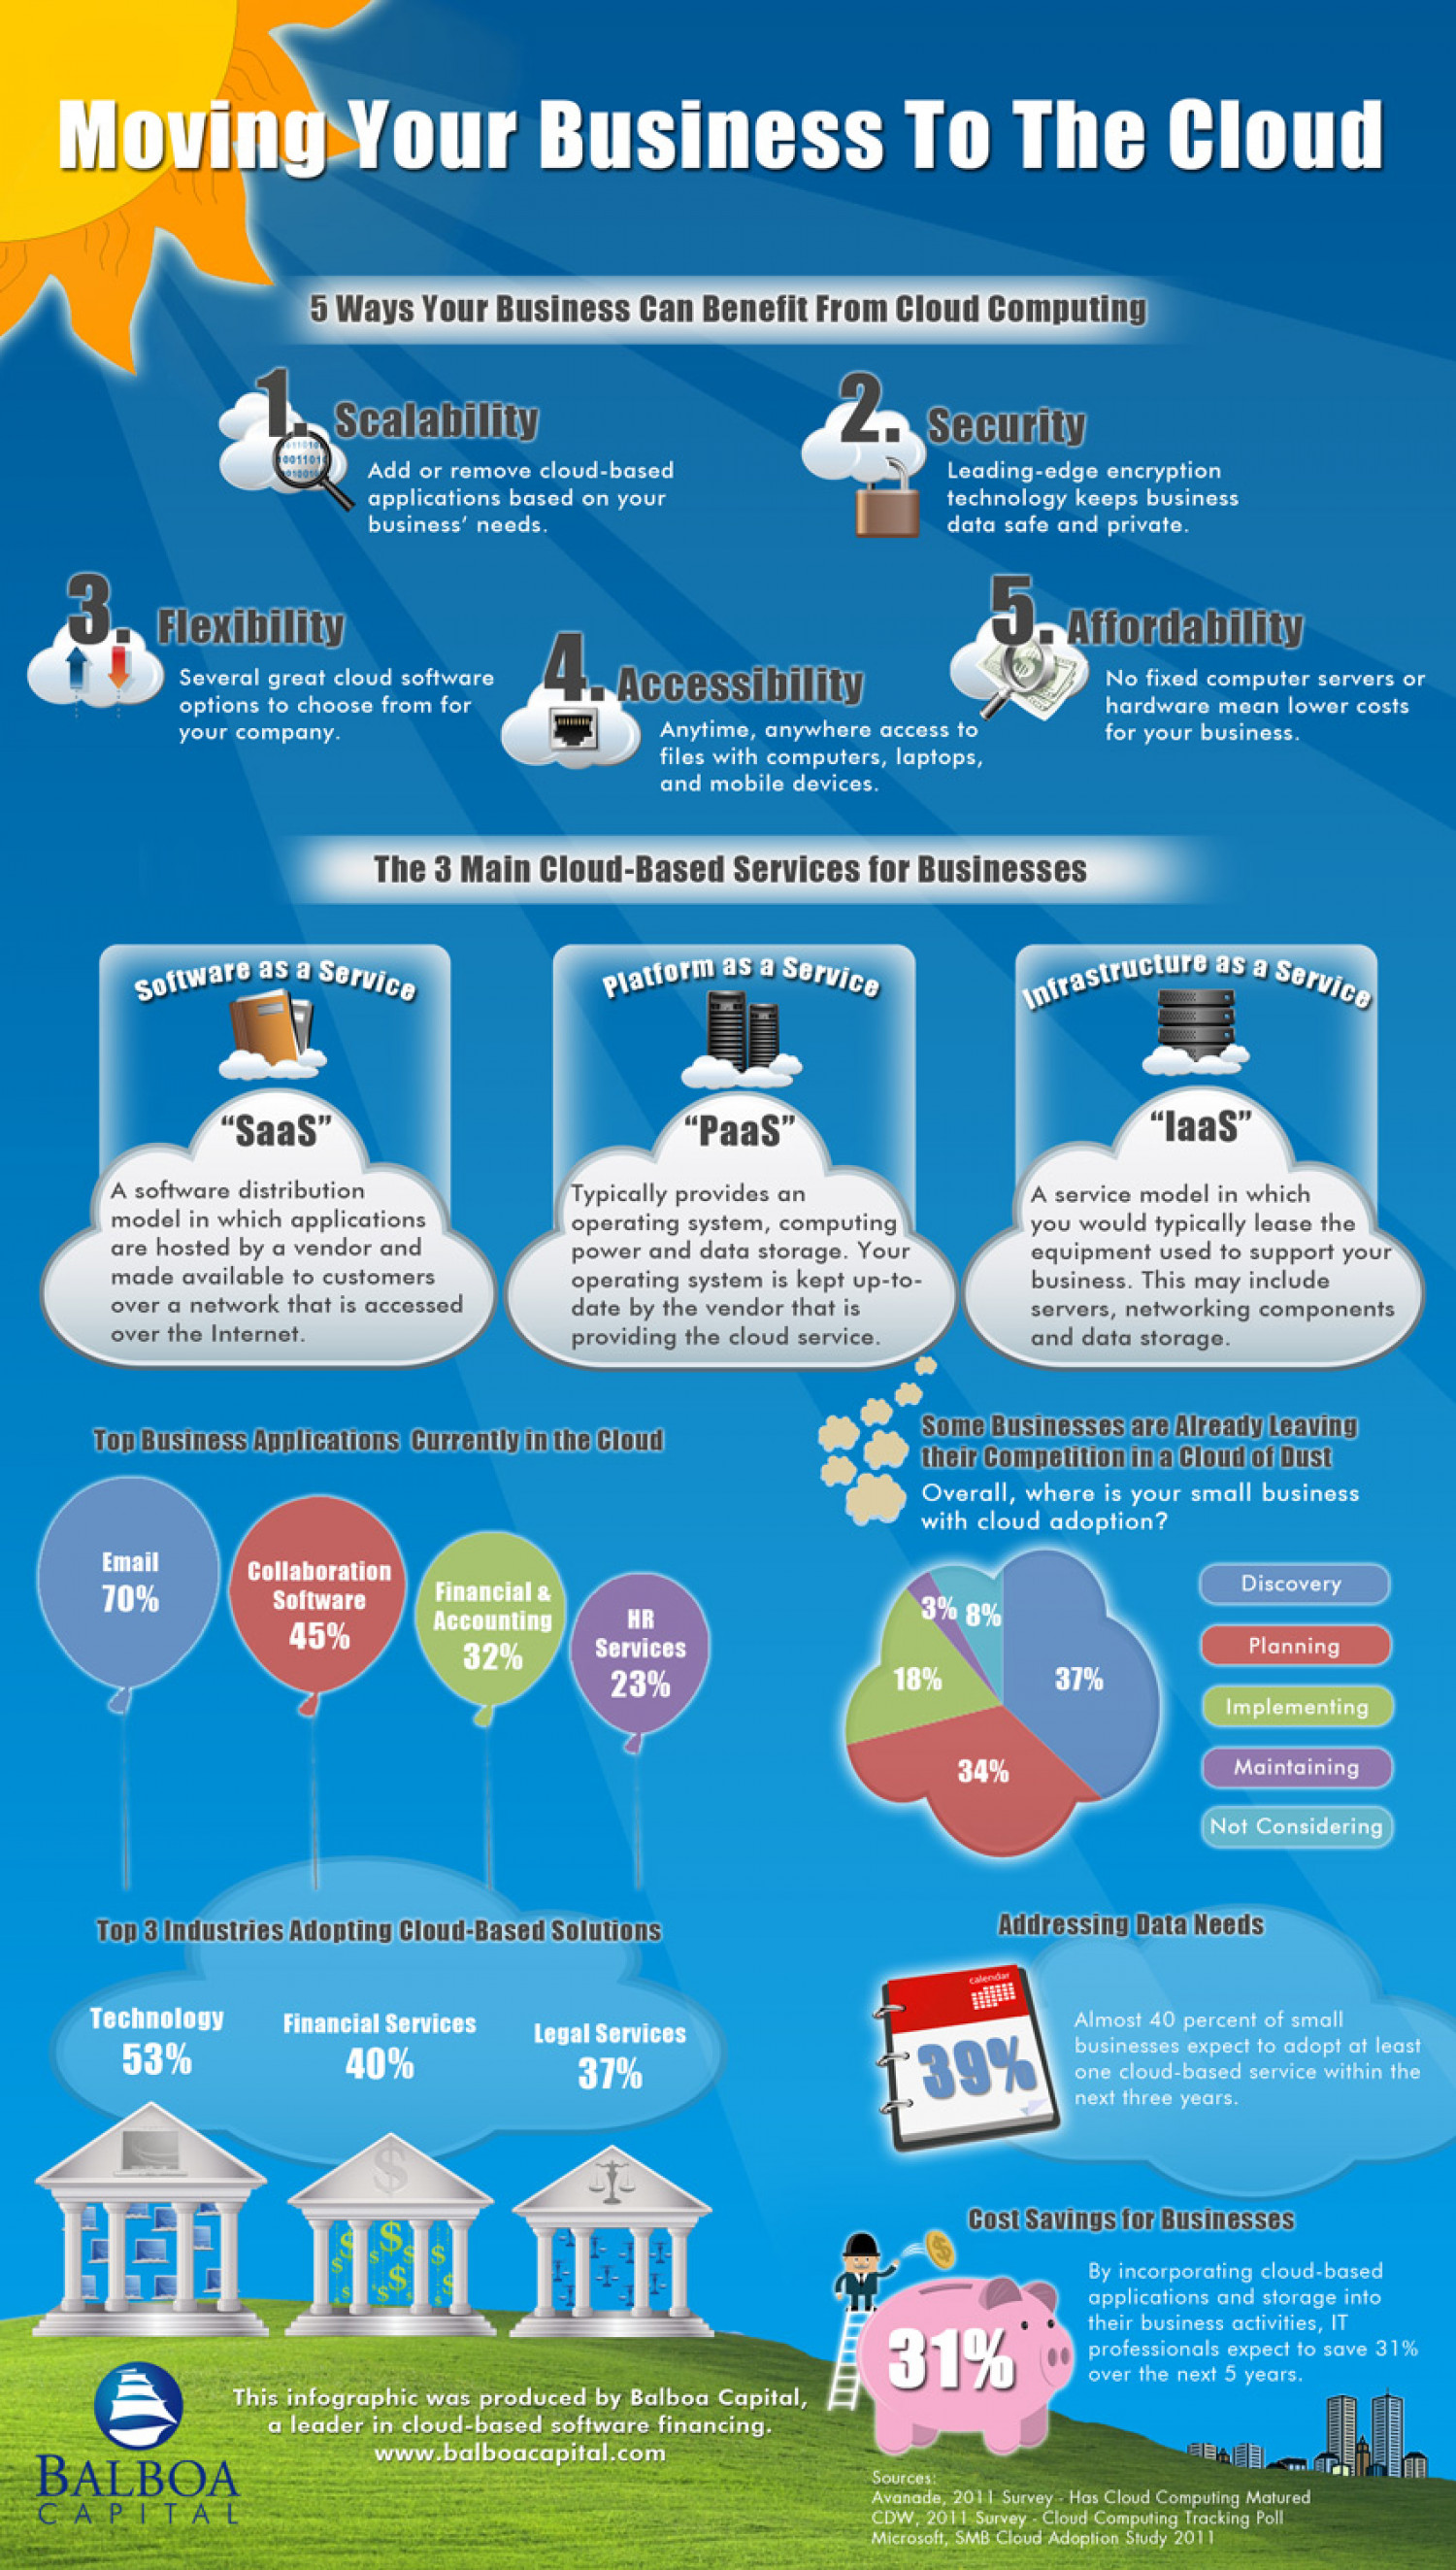 Cloud Computing Benefits For Small Businesses Infographic